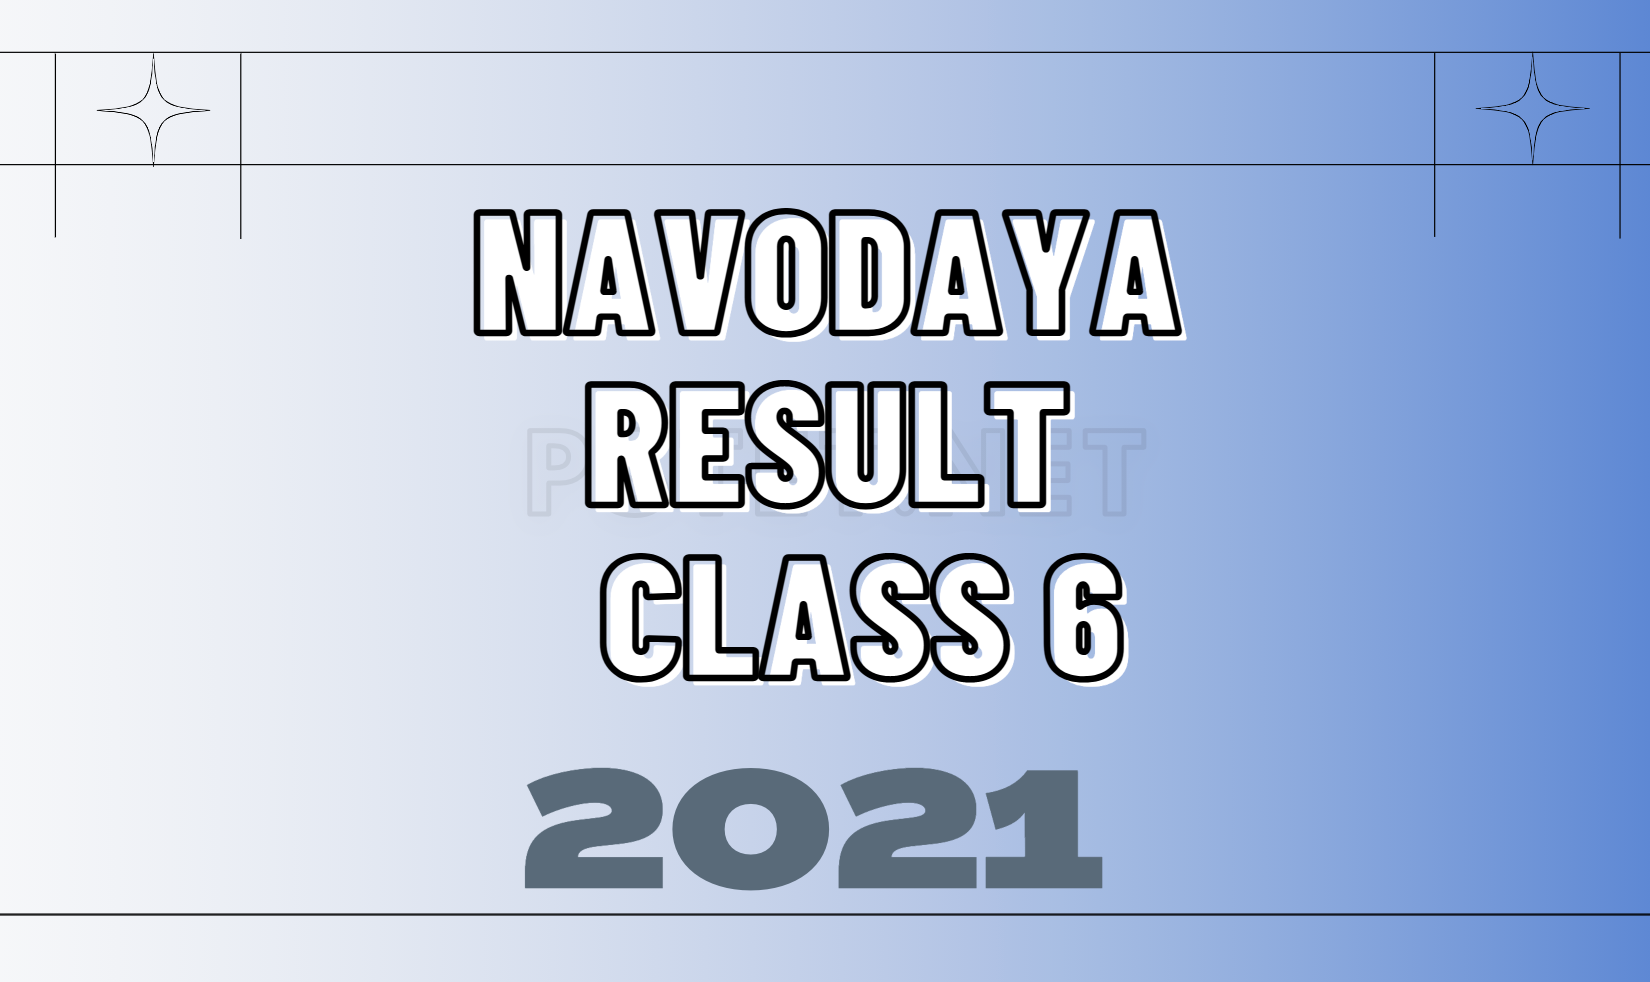 navodaya result 2021, navodaya result 2021 class 6, navodaya result, navodaya result class 6, jnvst class 6 result 2021, jnvst class 6 result,